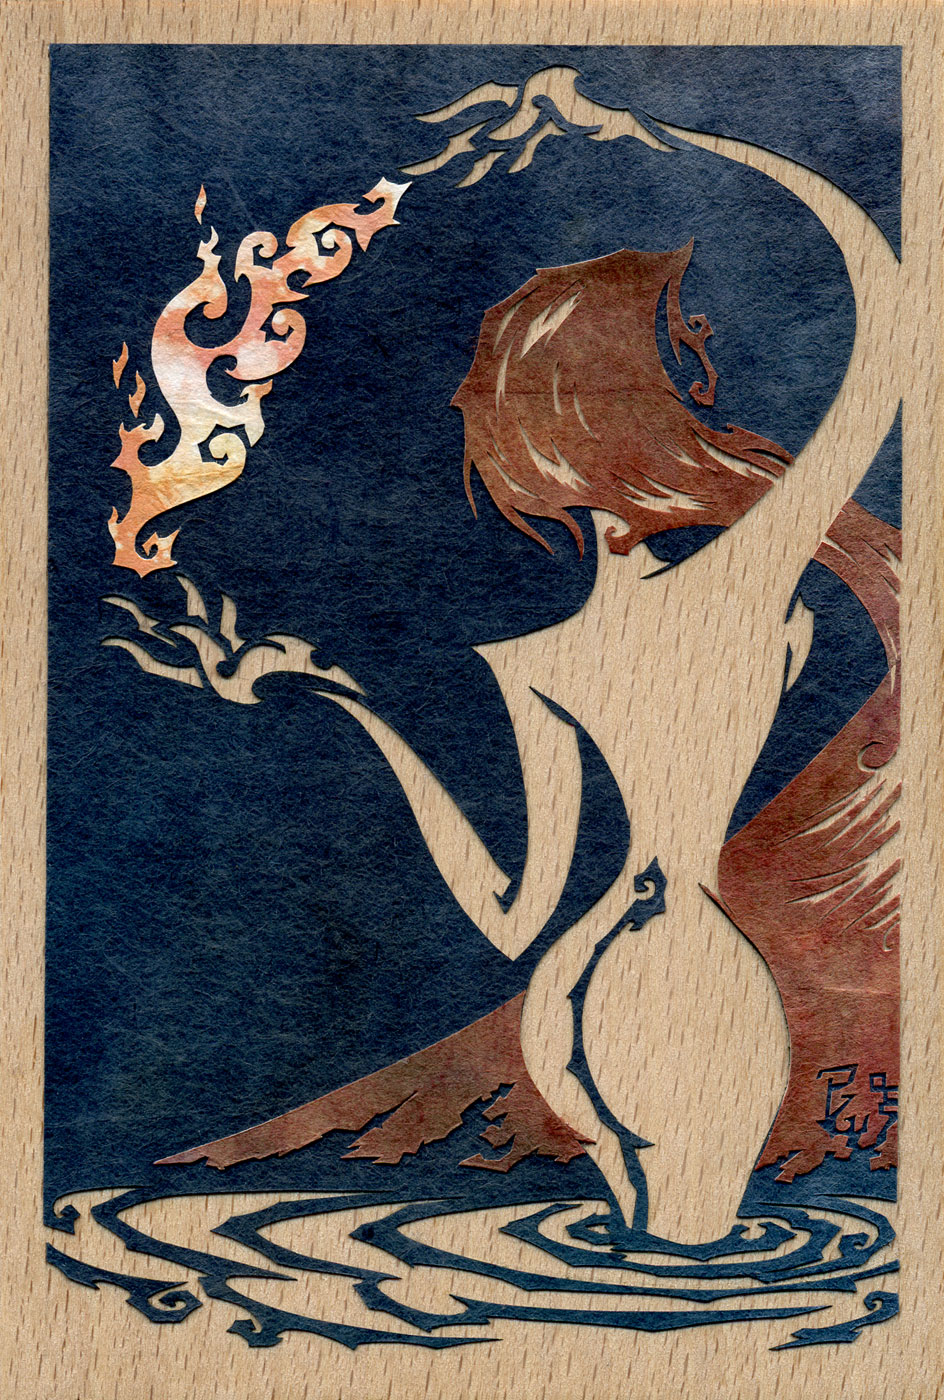 ⊛  She Who Brings the Fire   ⊛ cut paper + washi / wood  ⊛ 6 x 4 in • 150 X 100 mm   ⊛ private collection